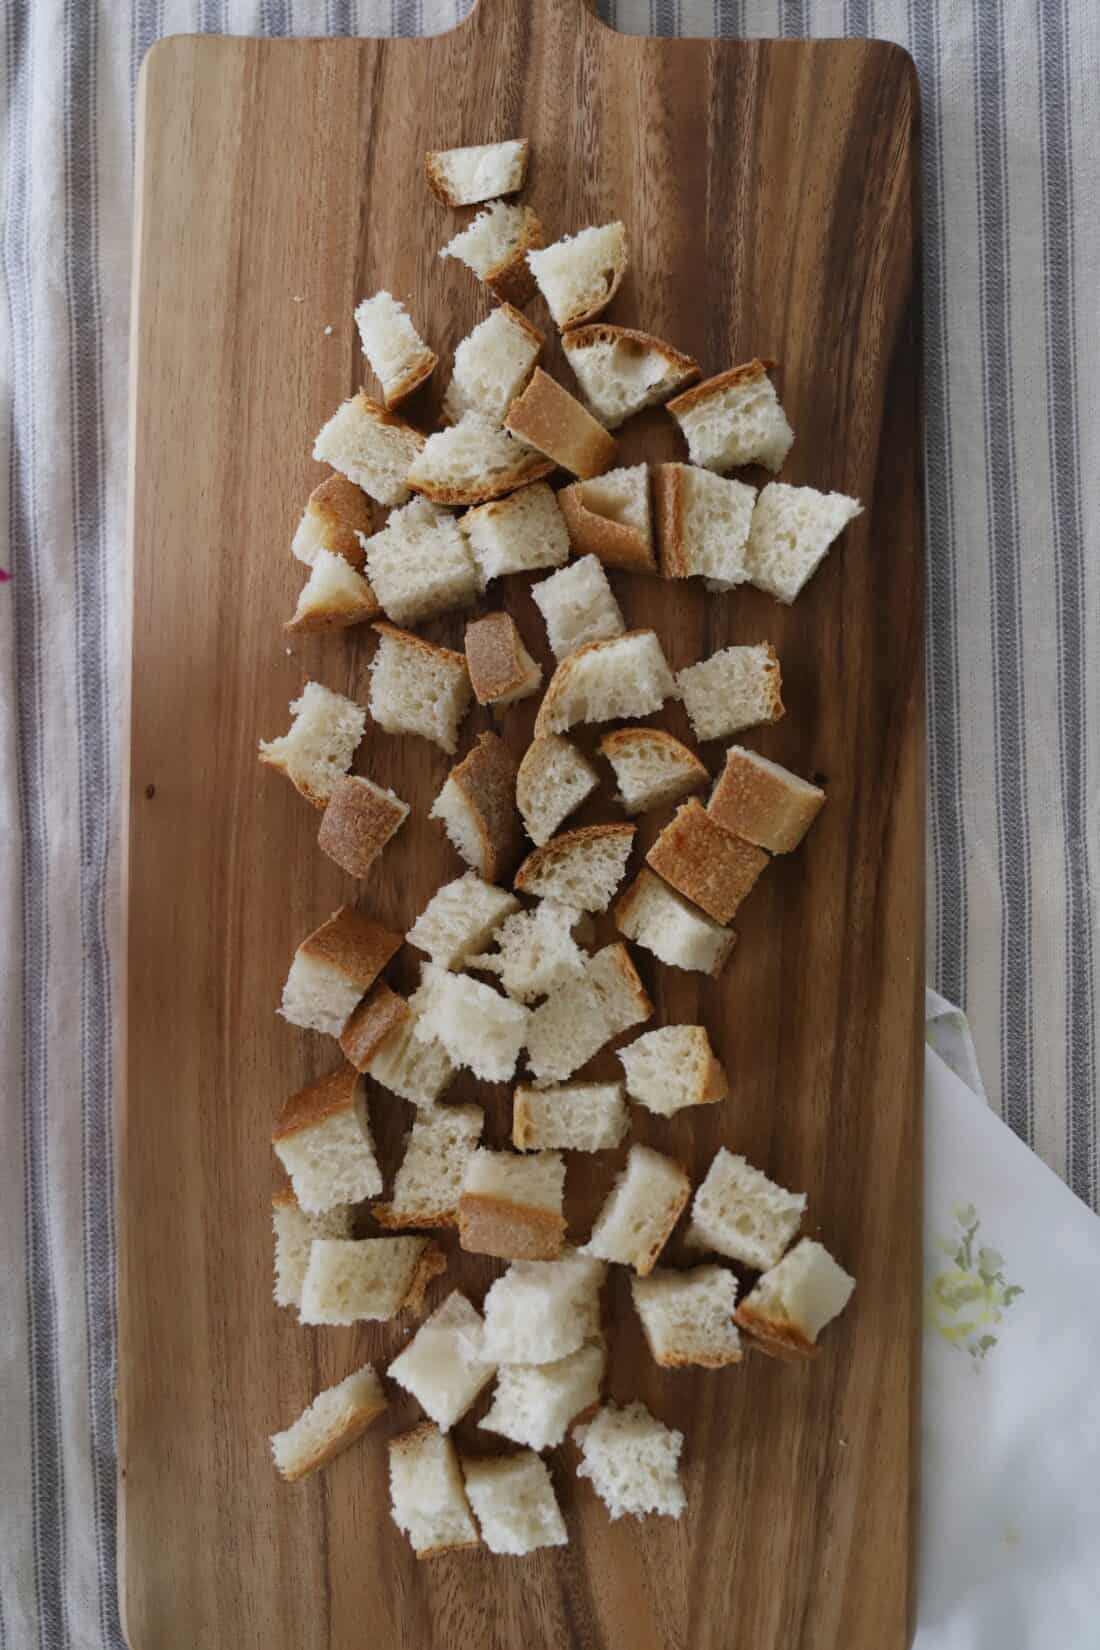 easy sourdough italian croutons from scratch diced bread on a cutting board